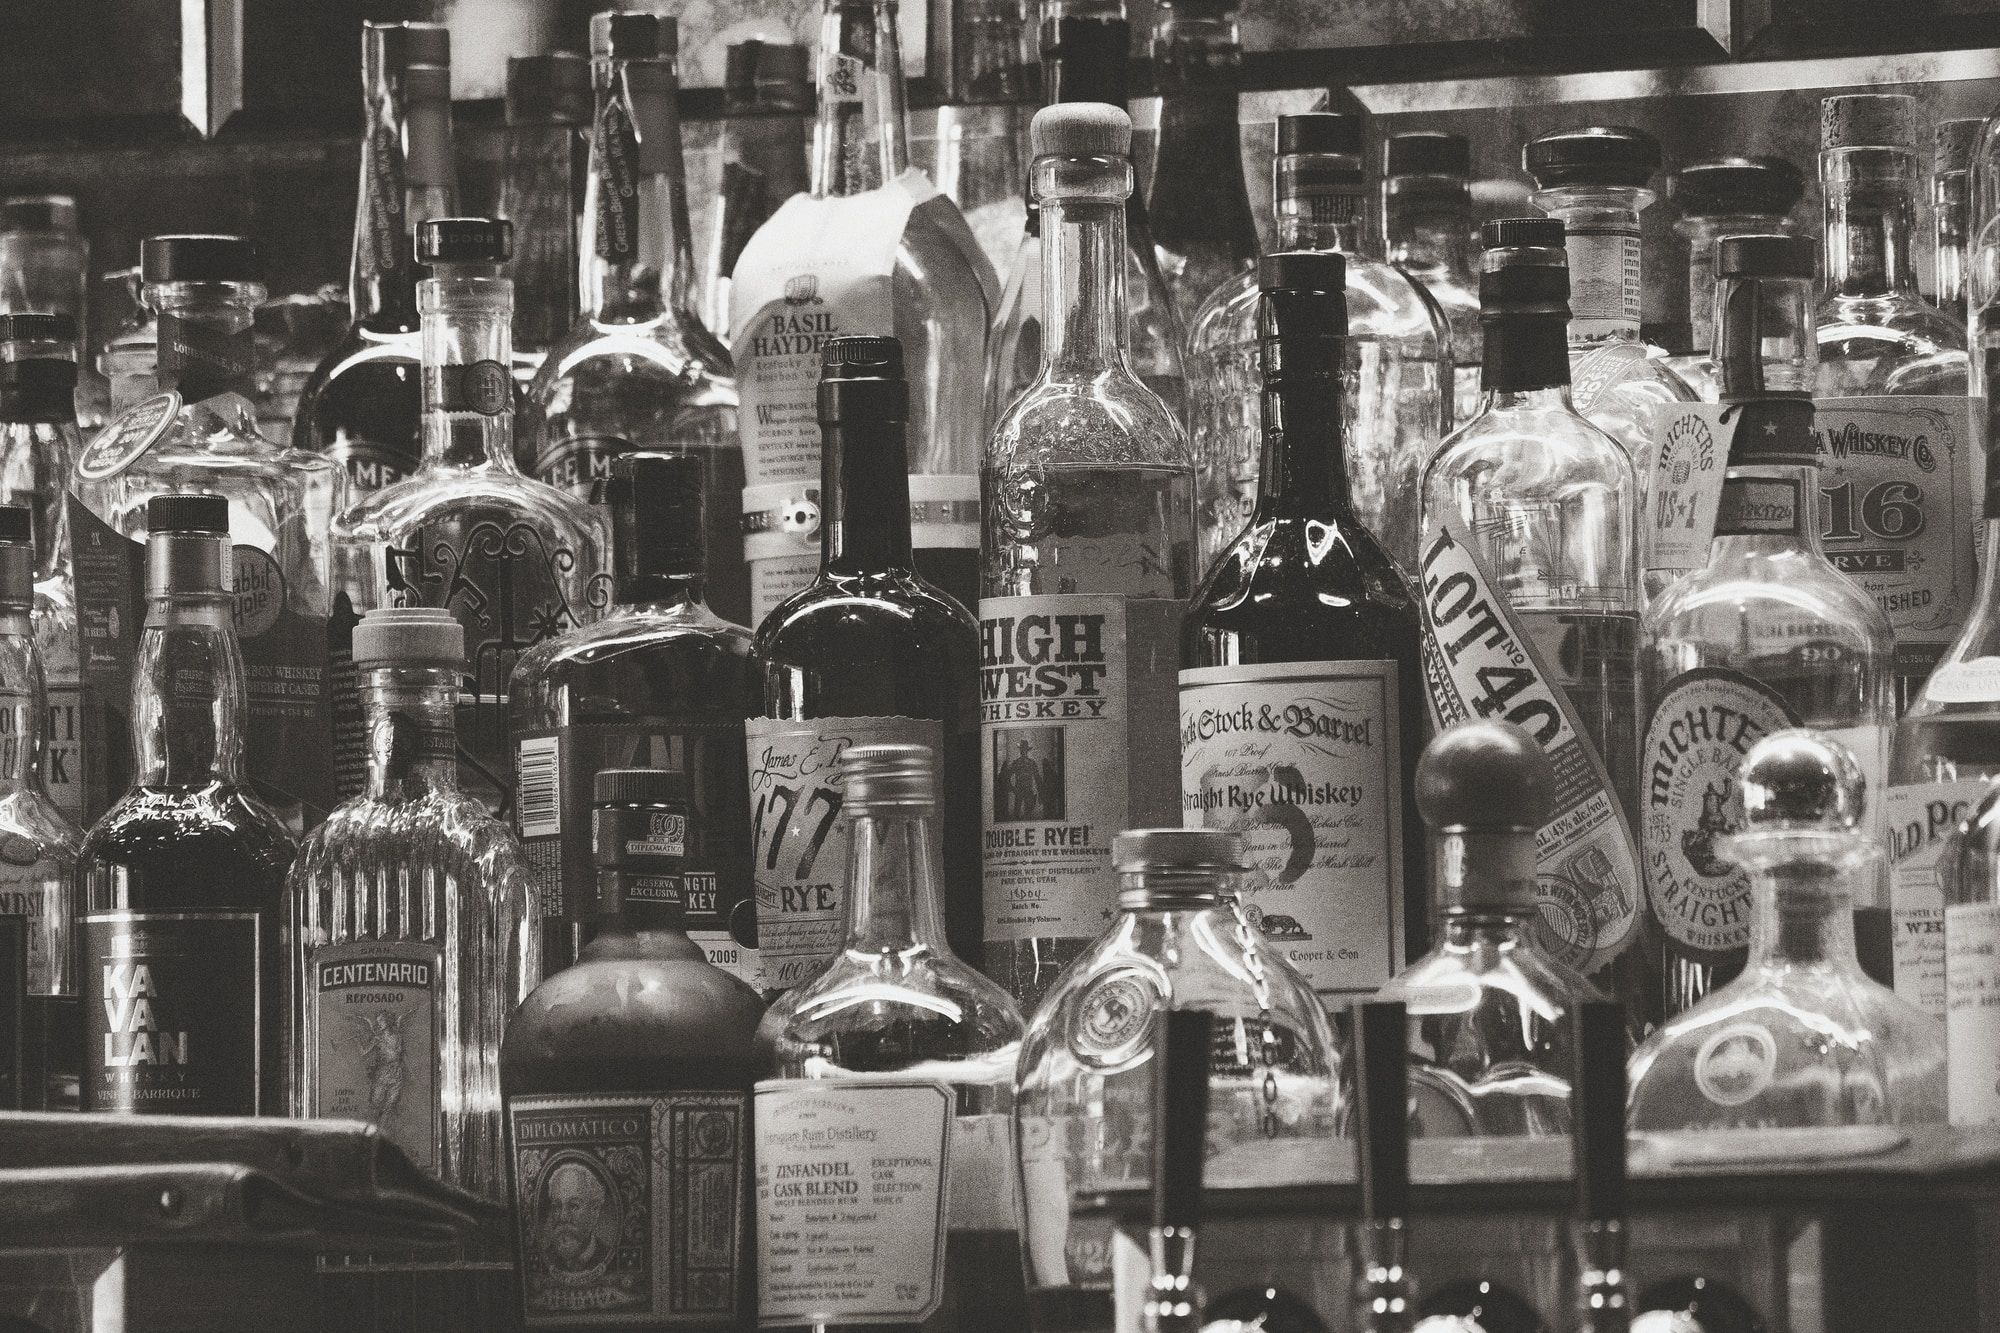 A wide selection of spirits displayed on a shelf within a bar.